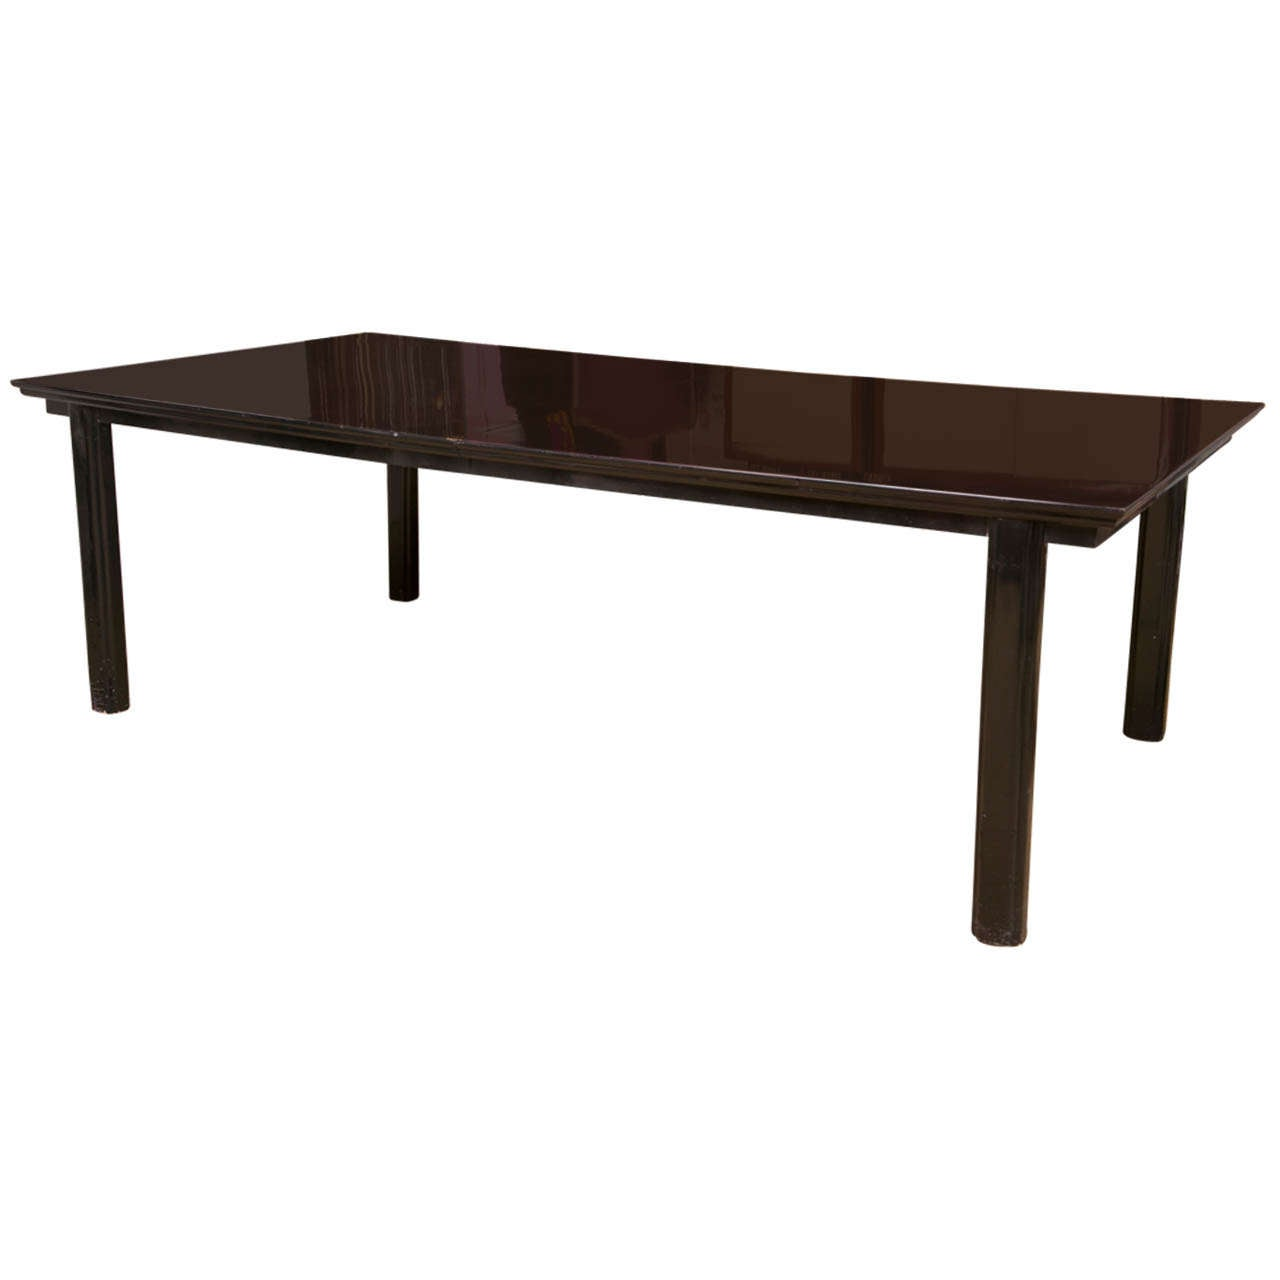 Black lacquer dining table for sale at 1stdibs - Black dining room tables ...